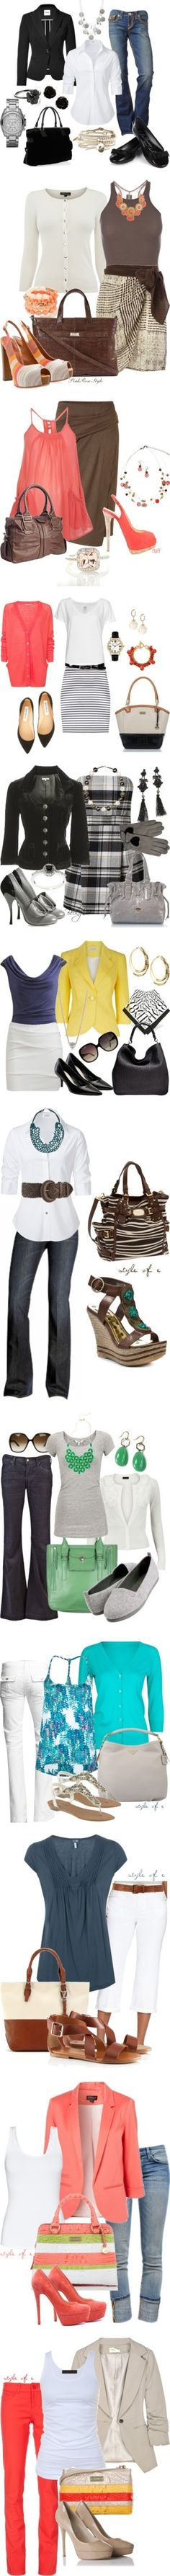 """work clothes"" by veronica-franklin on Polyvore."